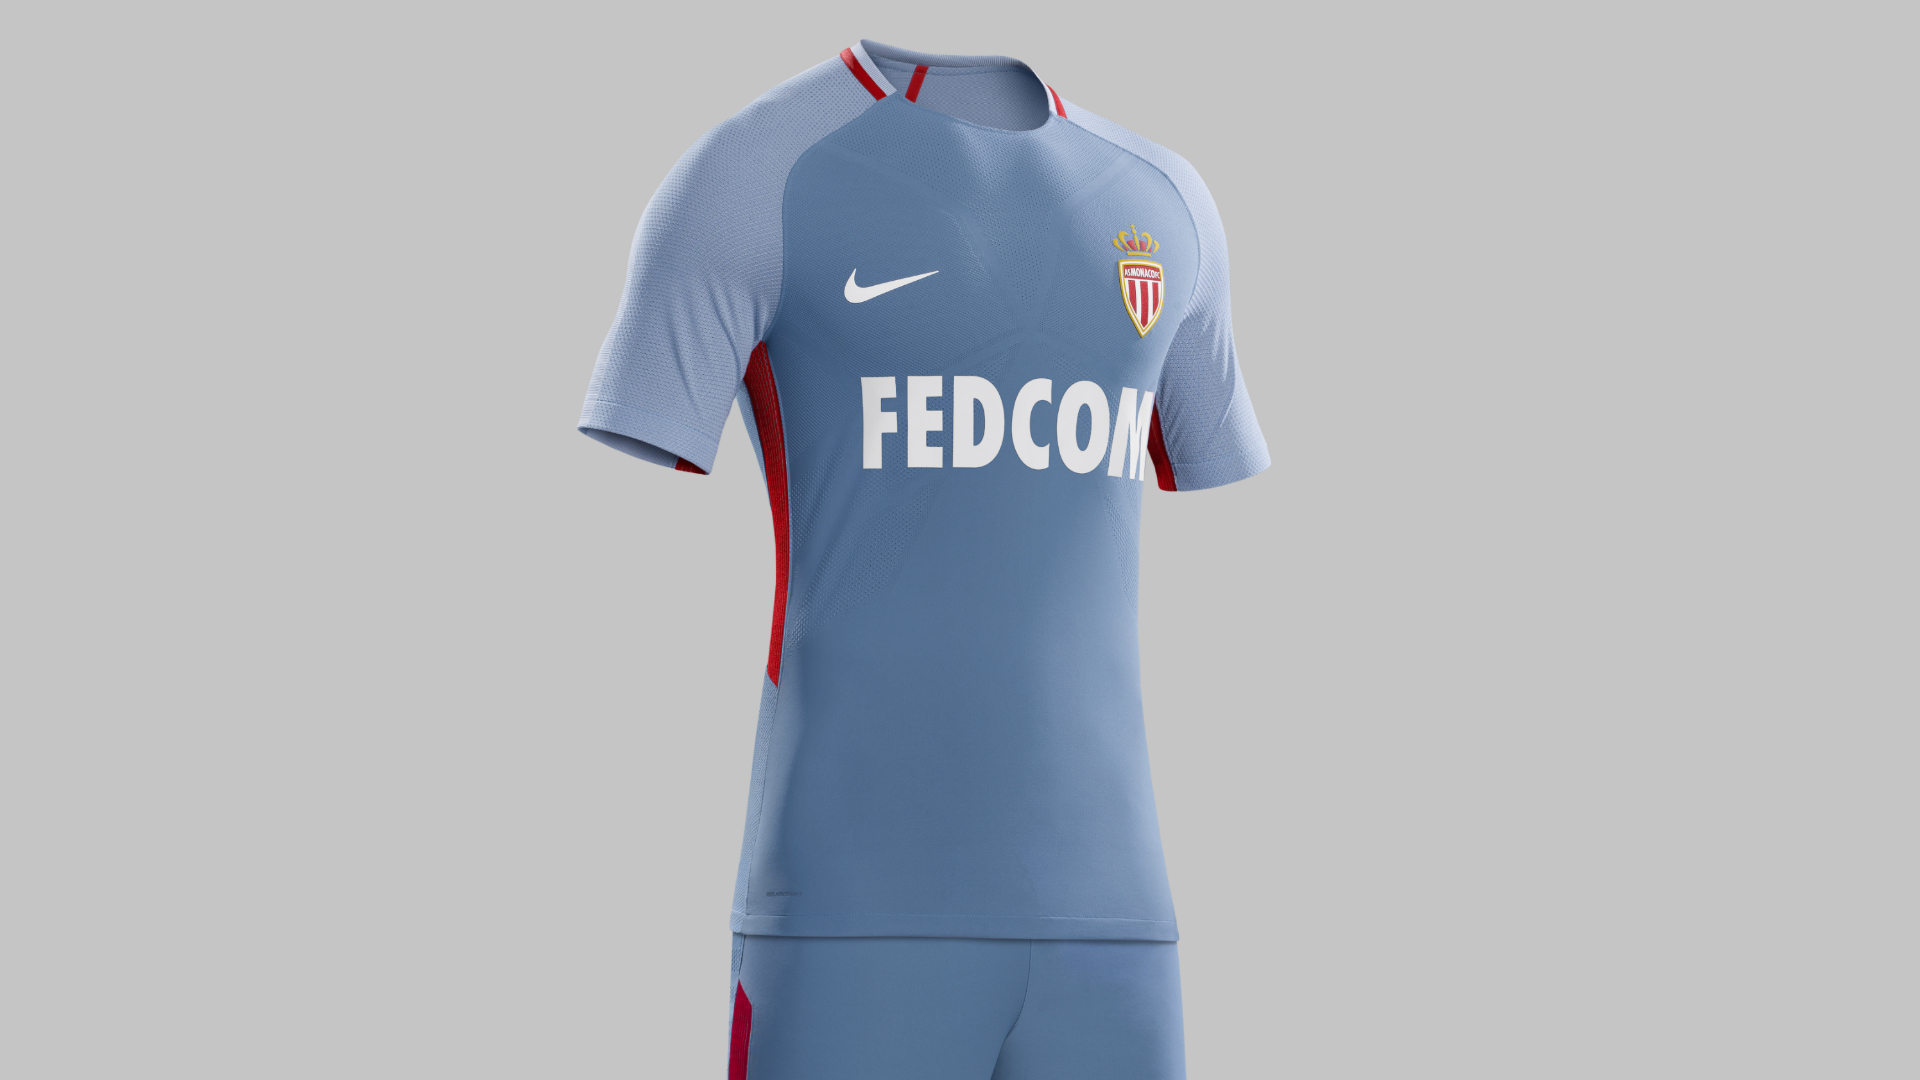 Maillot Domicile AS Monaco Tenue de match